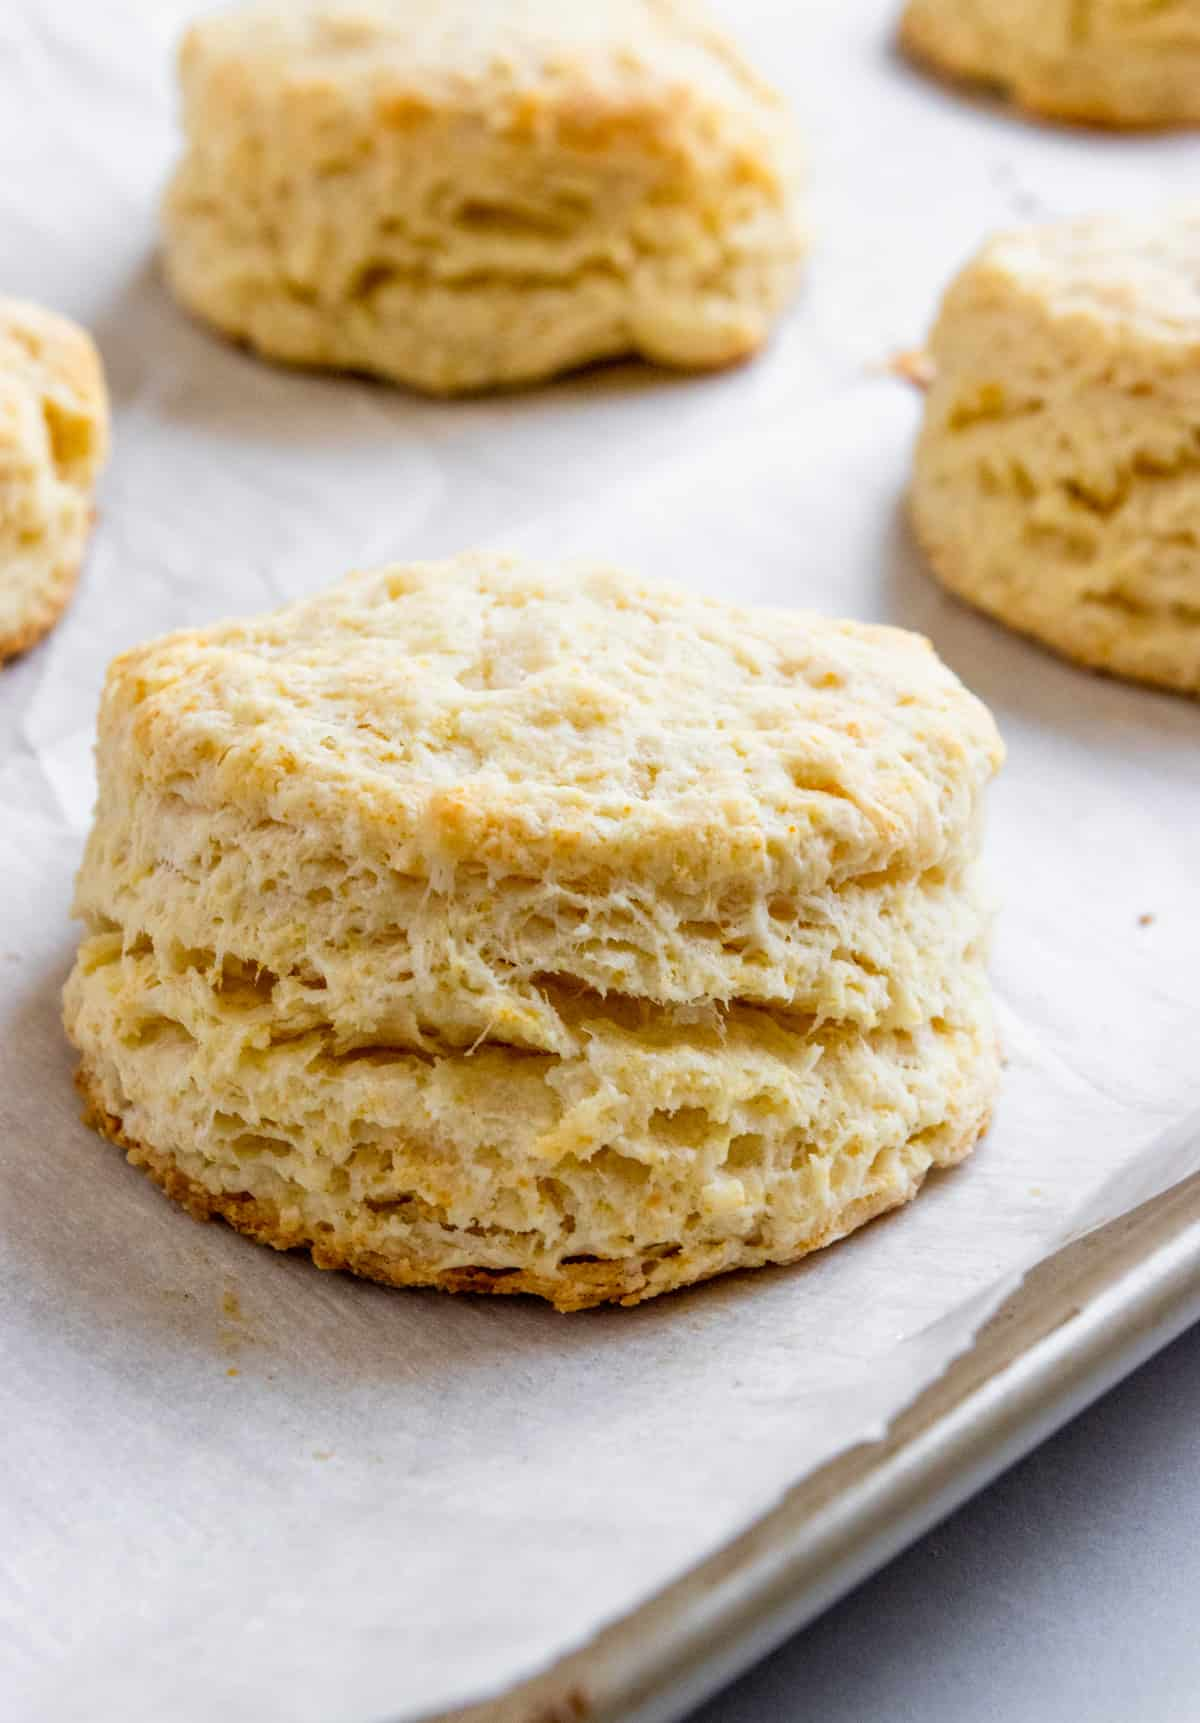 Flaky biscuits on baking sheet.